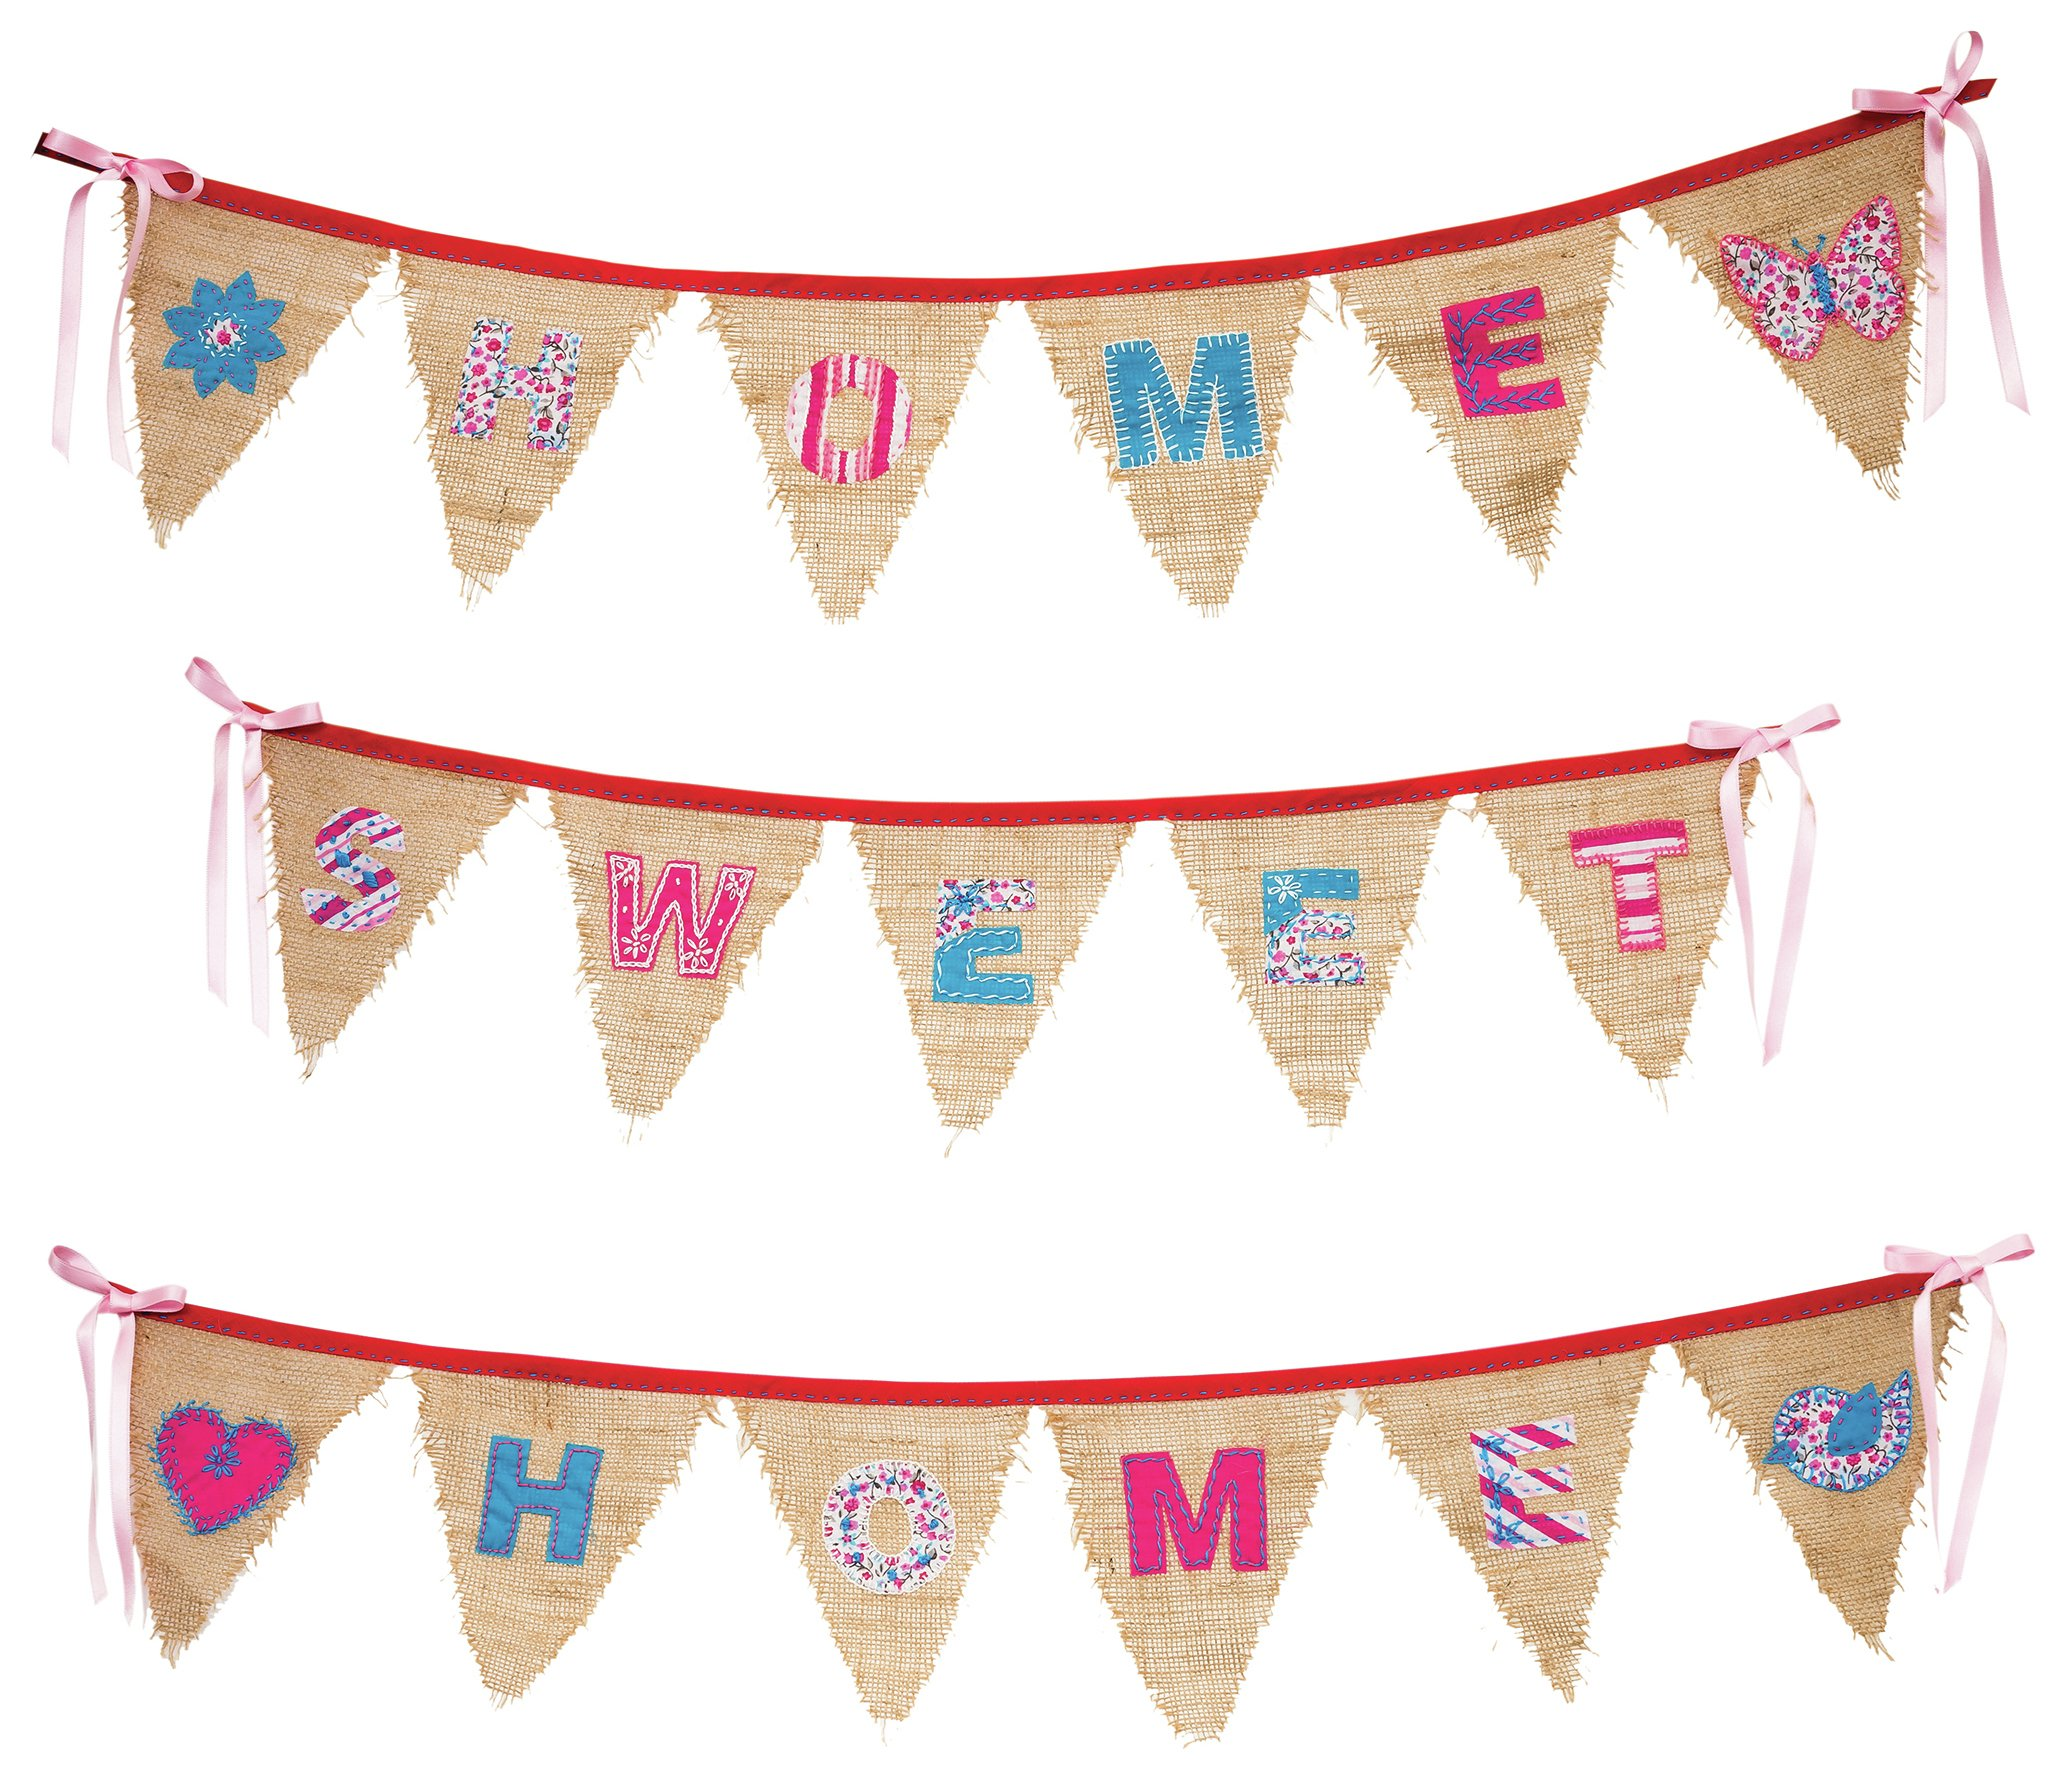 diy-creative-projects-applique-bunting